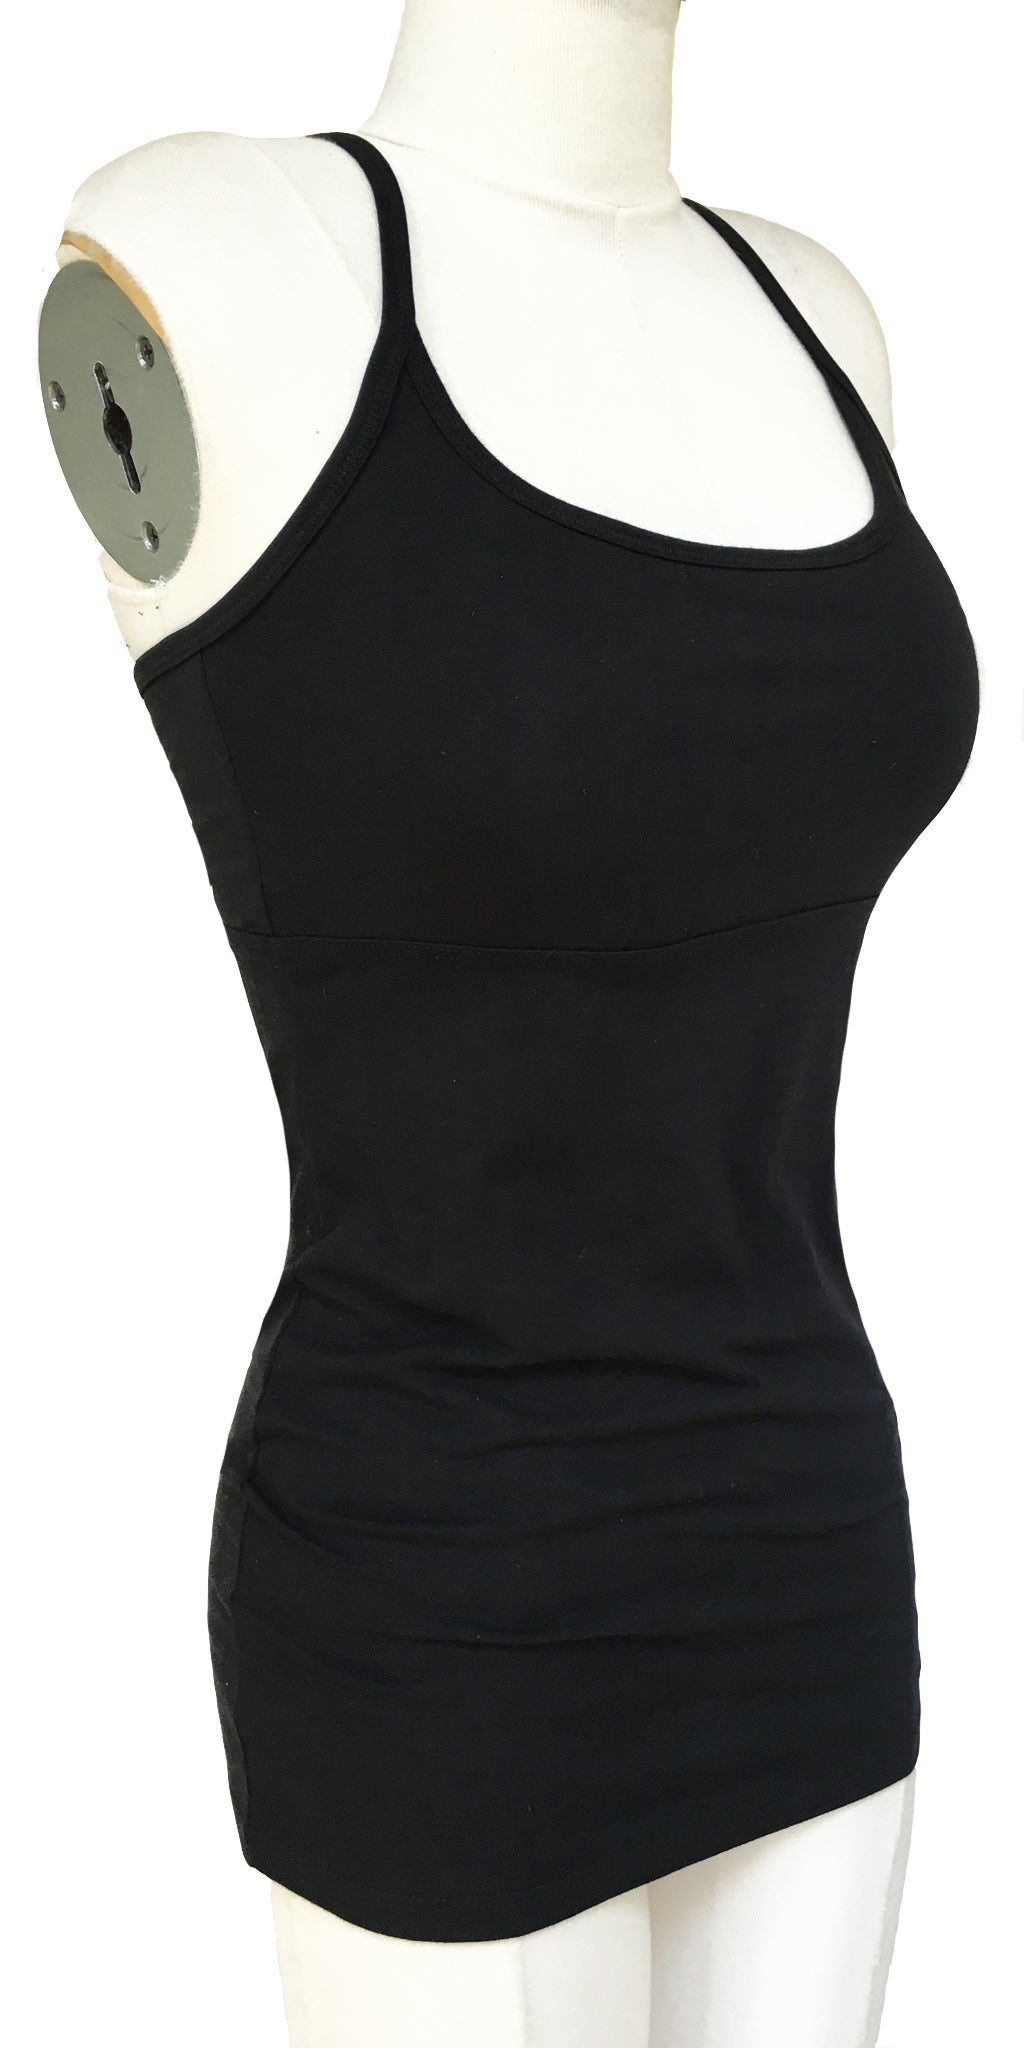 Hot Shot Racerback w/built in bra Camisole